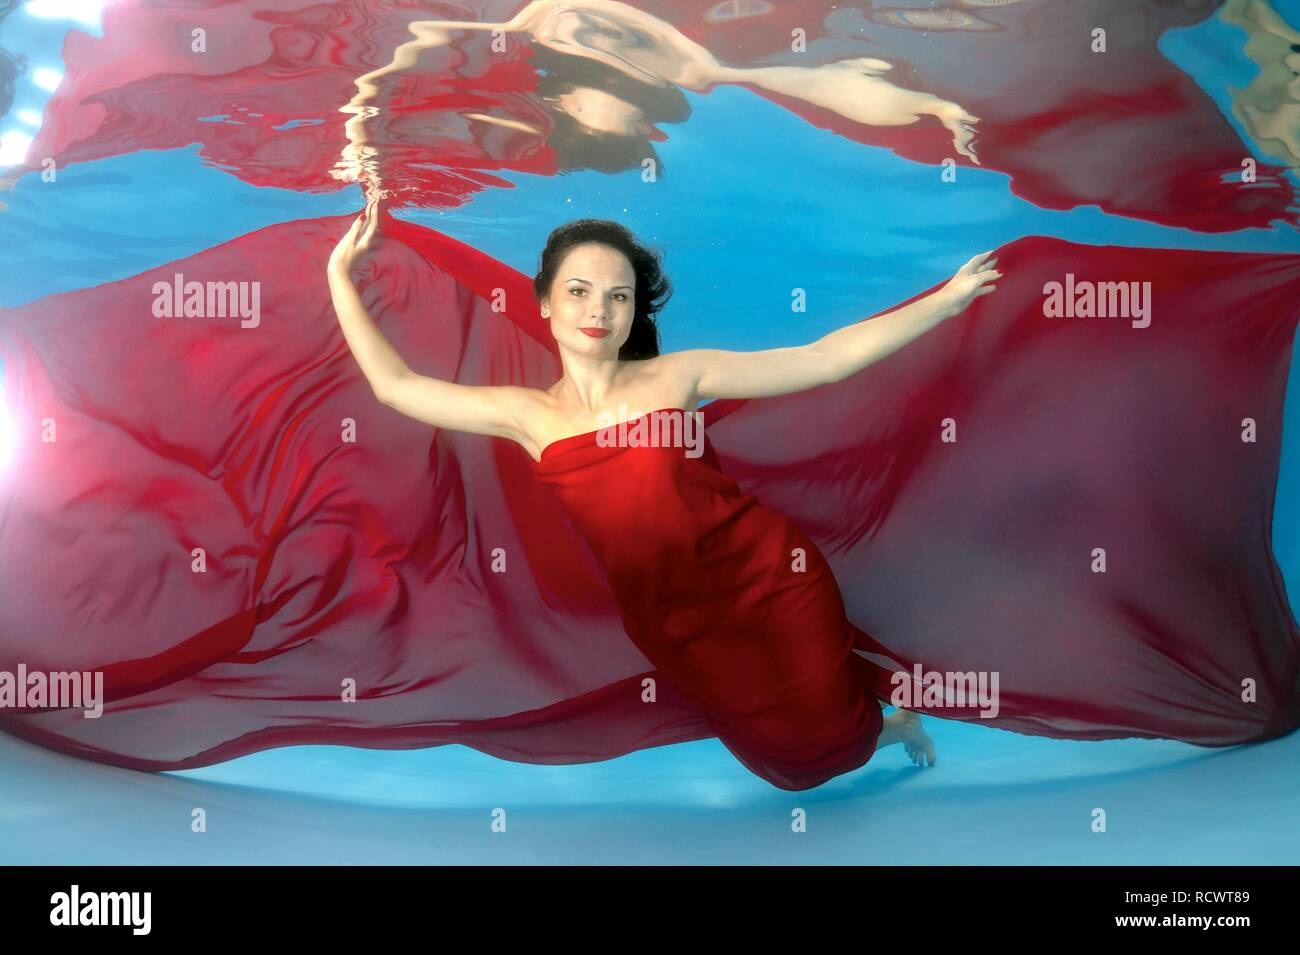 Woman presenting underwater fashion in pool Stock Photo